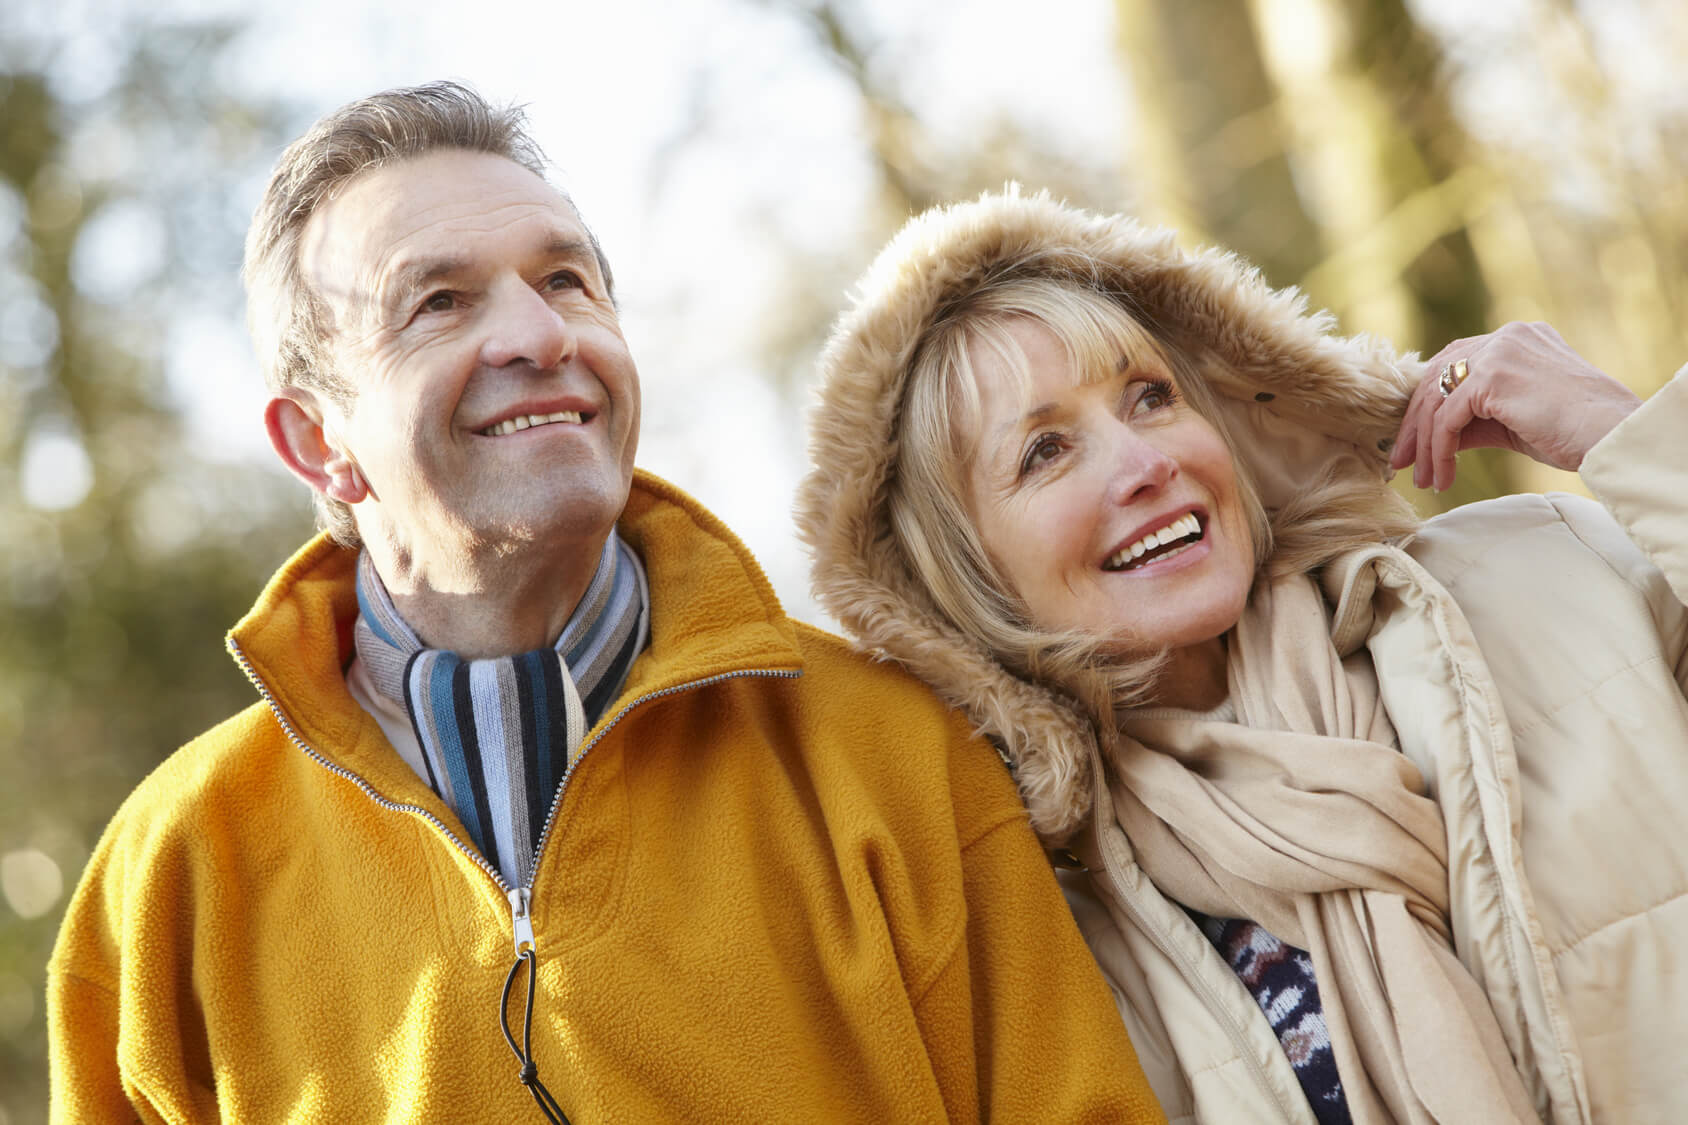 Smiling couple outdoors after replacing their teeth with dentures